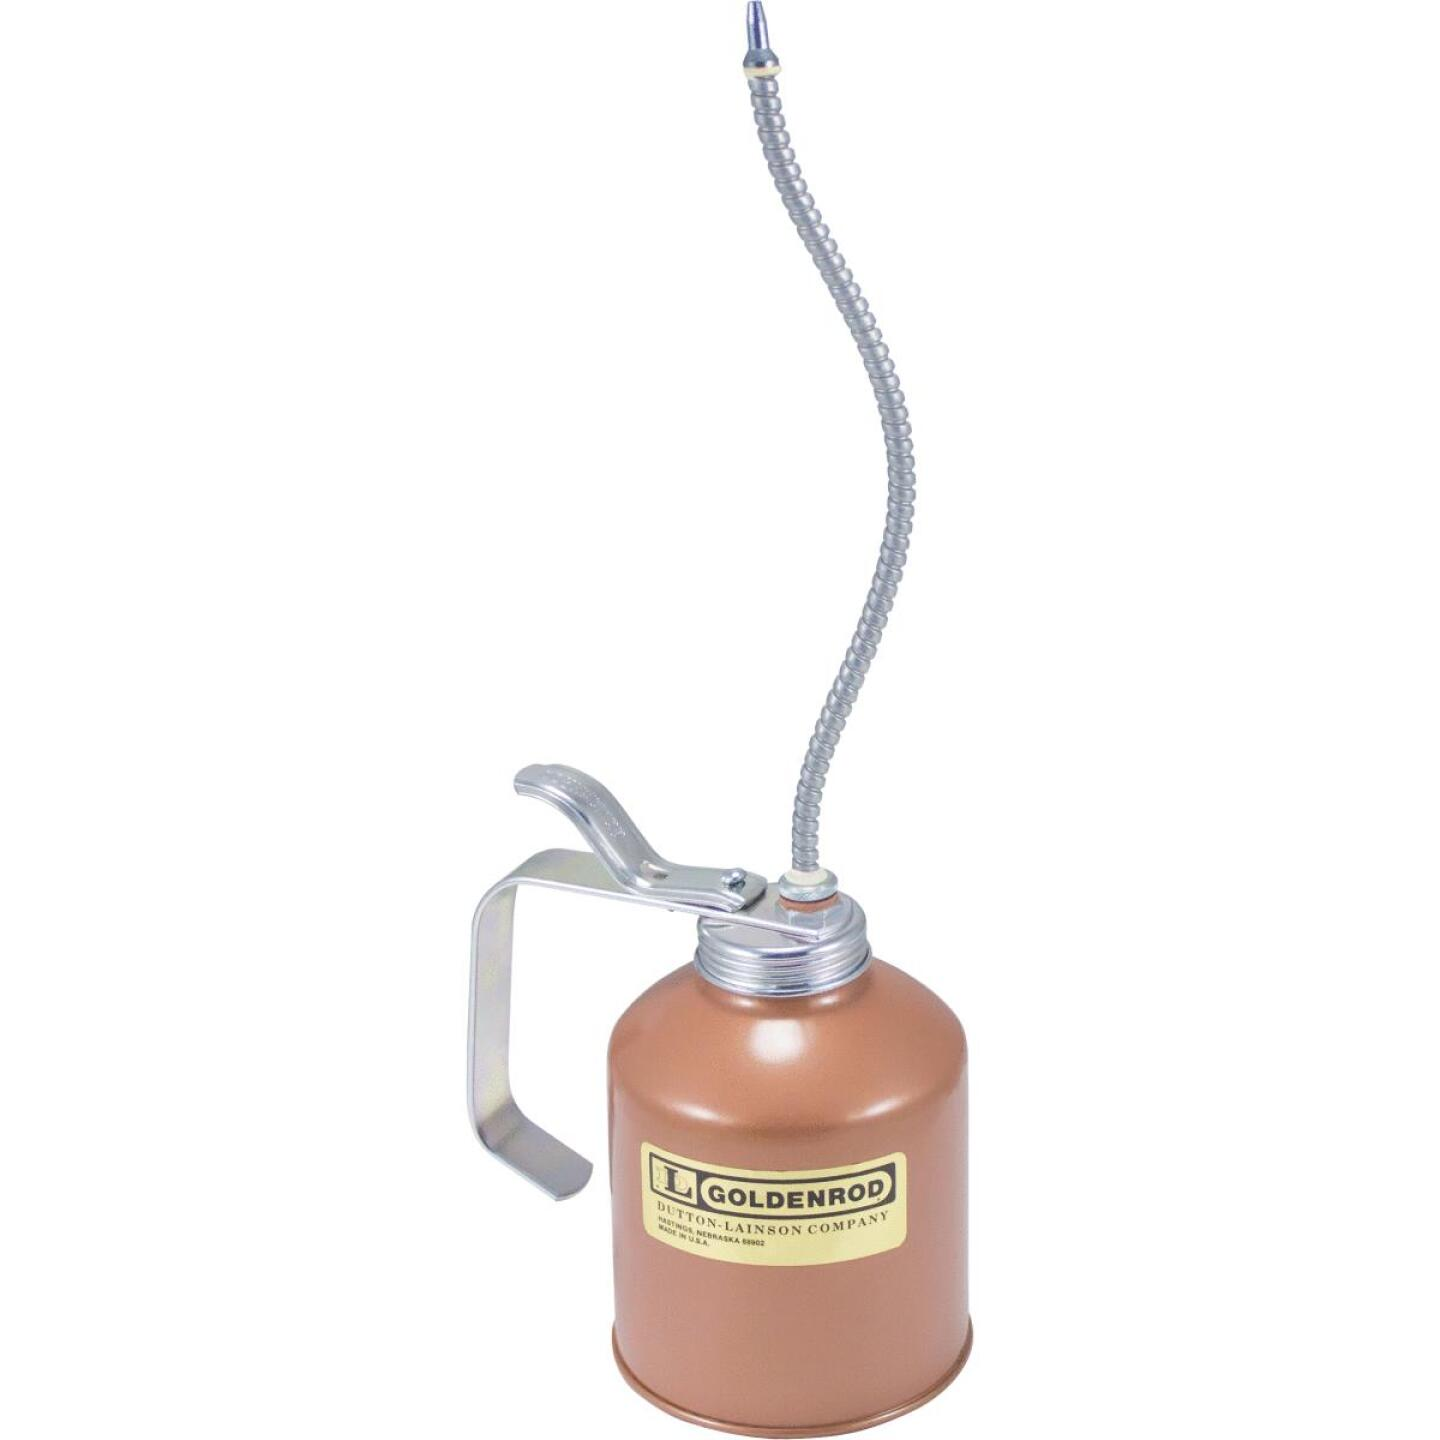 Goldenrod 16 Oz. Pump Oiler with 8 In. Flexible Spout Image 1